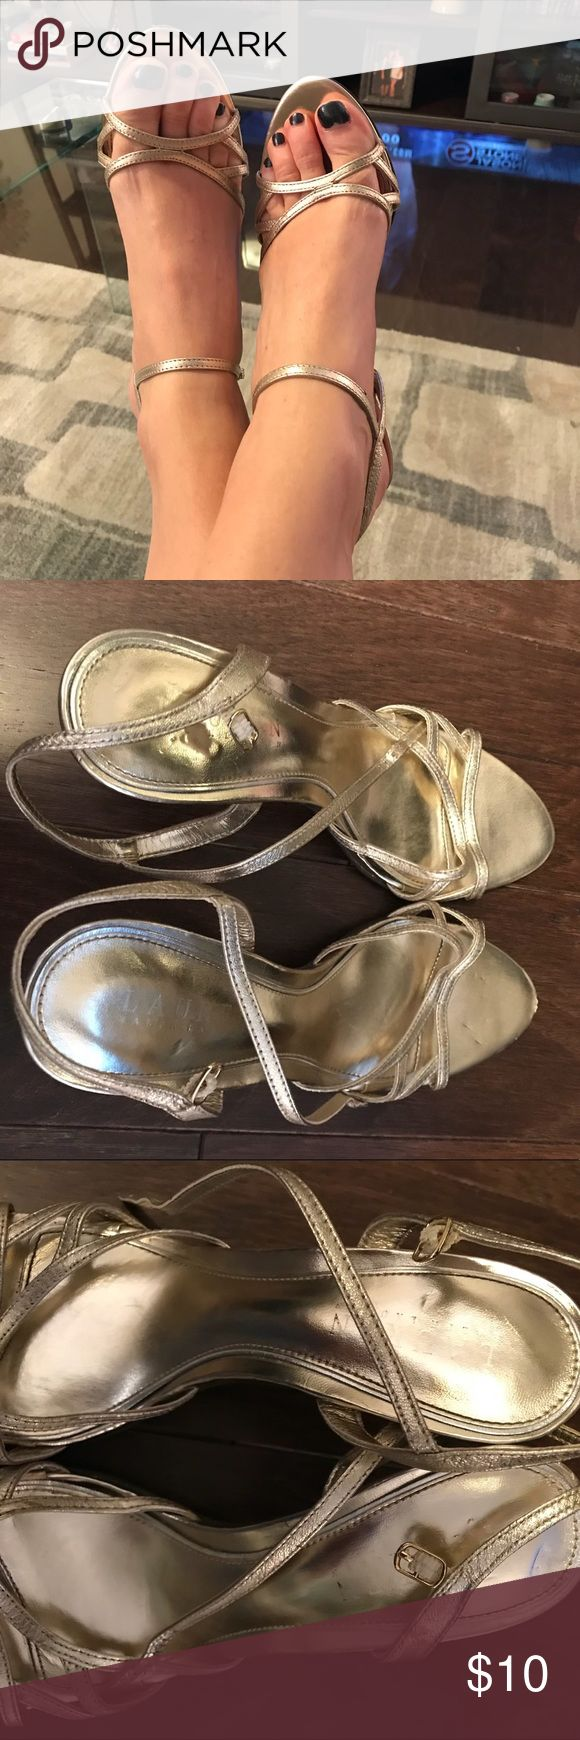 Ralph Lauren gold strappy sandals! In the third pic, you will see that the front of one of the shoes is scuffed! These sandals go with everything!!! I love them and they are super comfortable, but they have been worn! Ralph Lauren Shoes Sandals